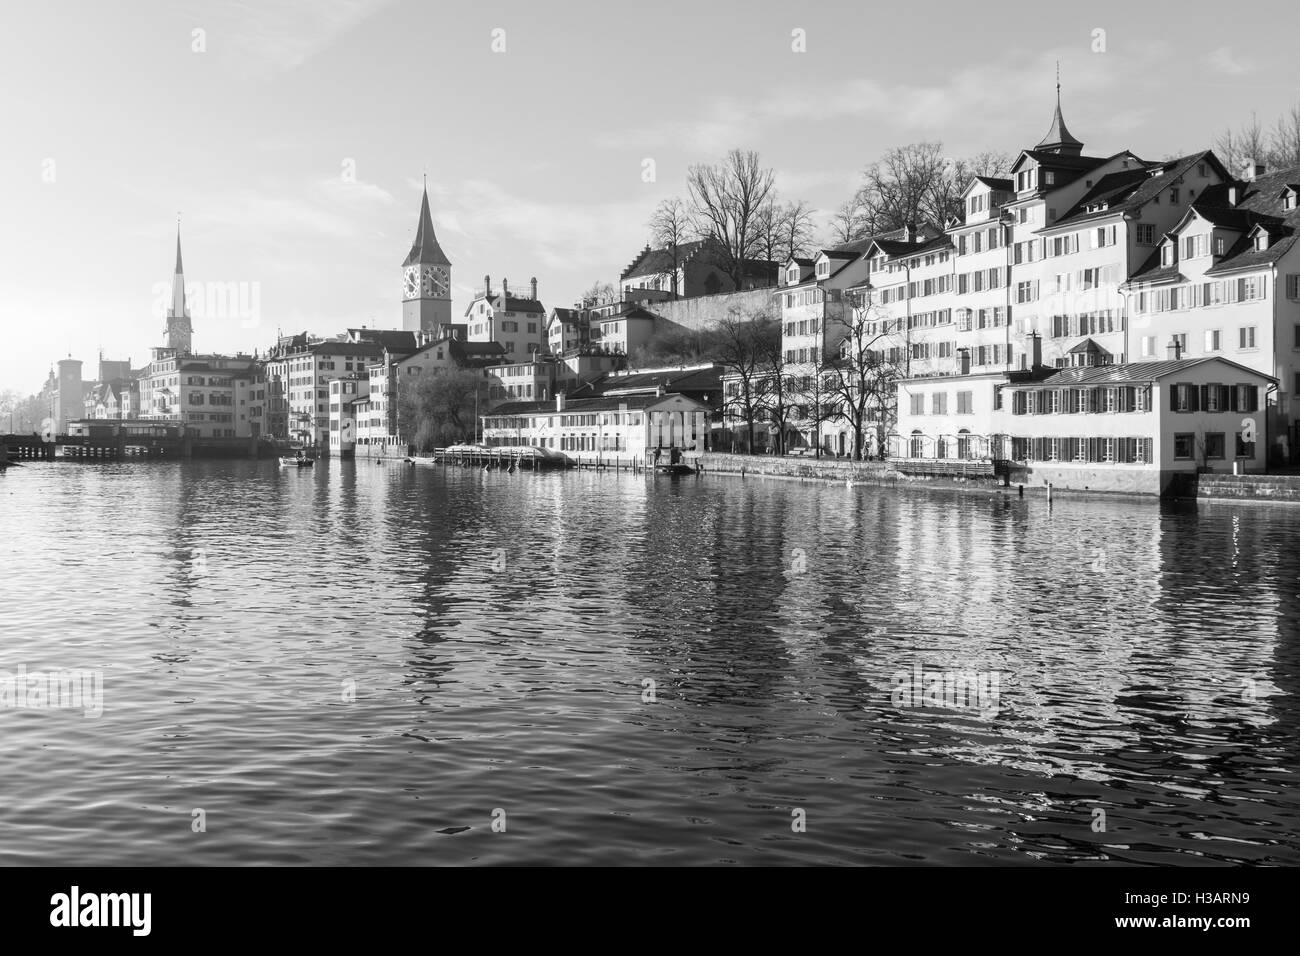 ZURICH, SWITZERLAND - DECEMBER 27, 2015: View of the west bank of the Limmat River, with the St. Peter and Fraumunster - Stock Image